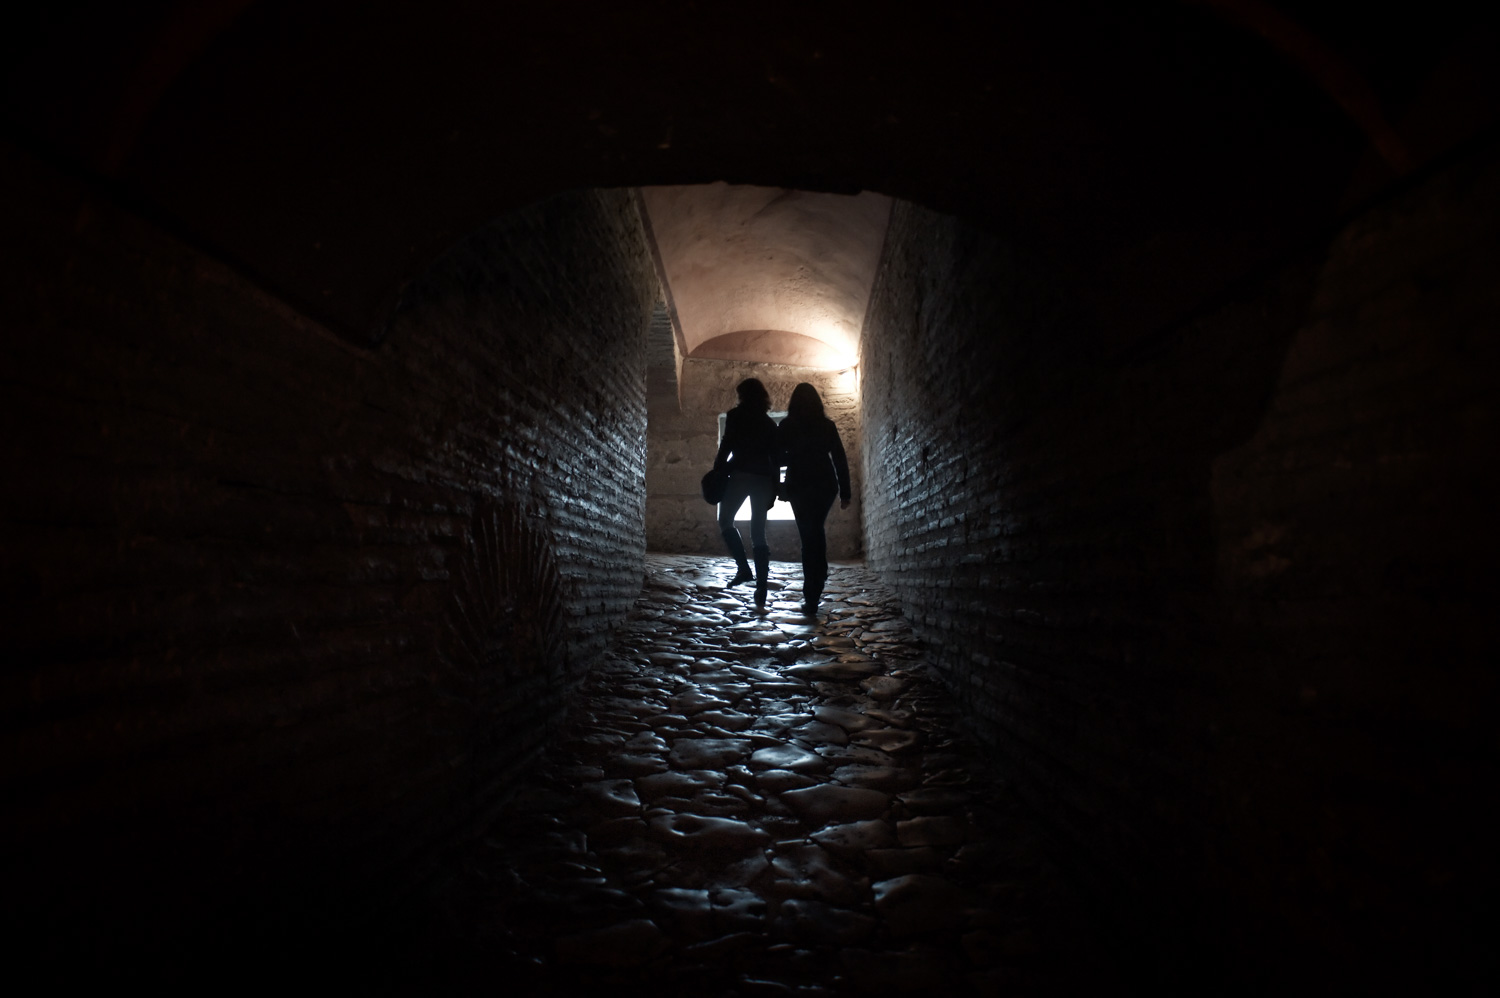 people in an old passage